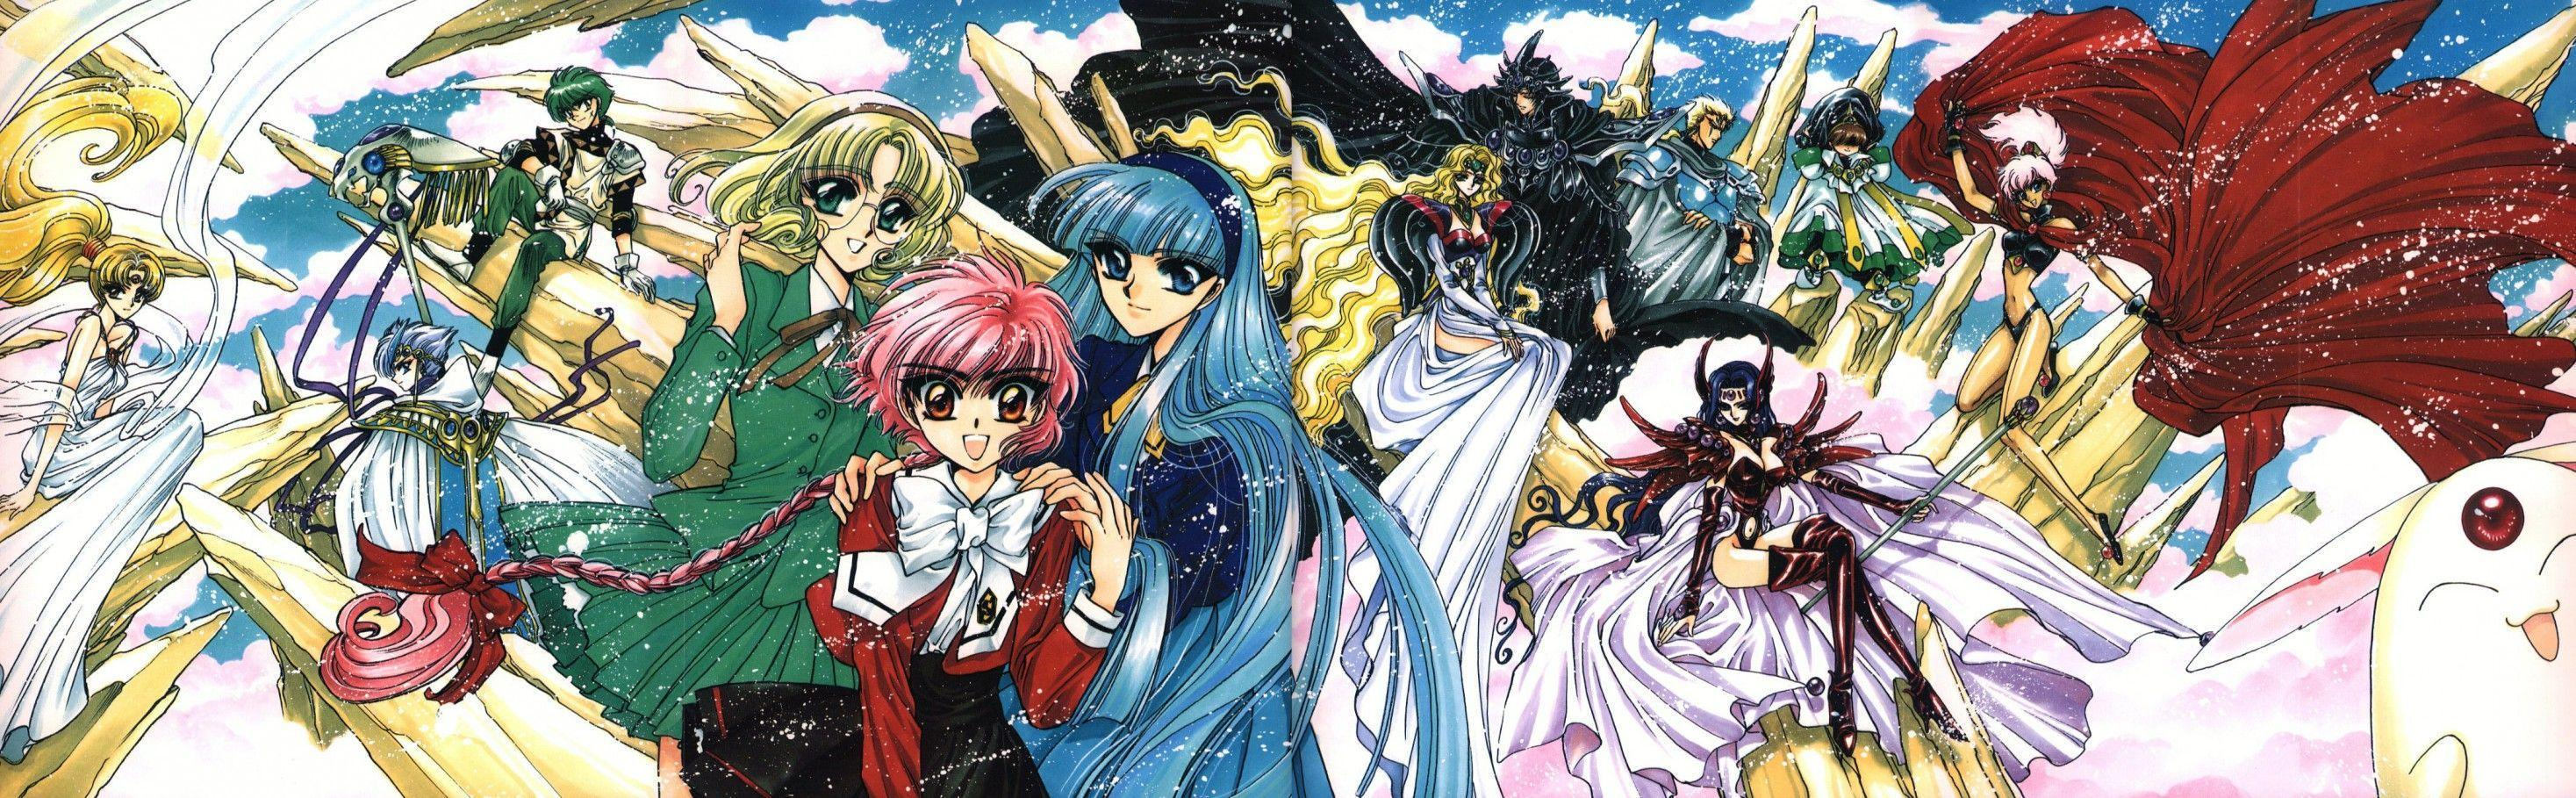 Magic Knight Rayearth HD Wallpapers